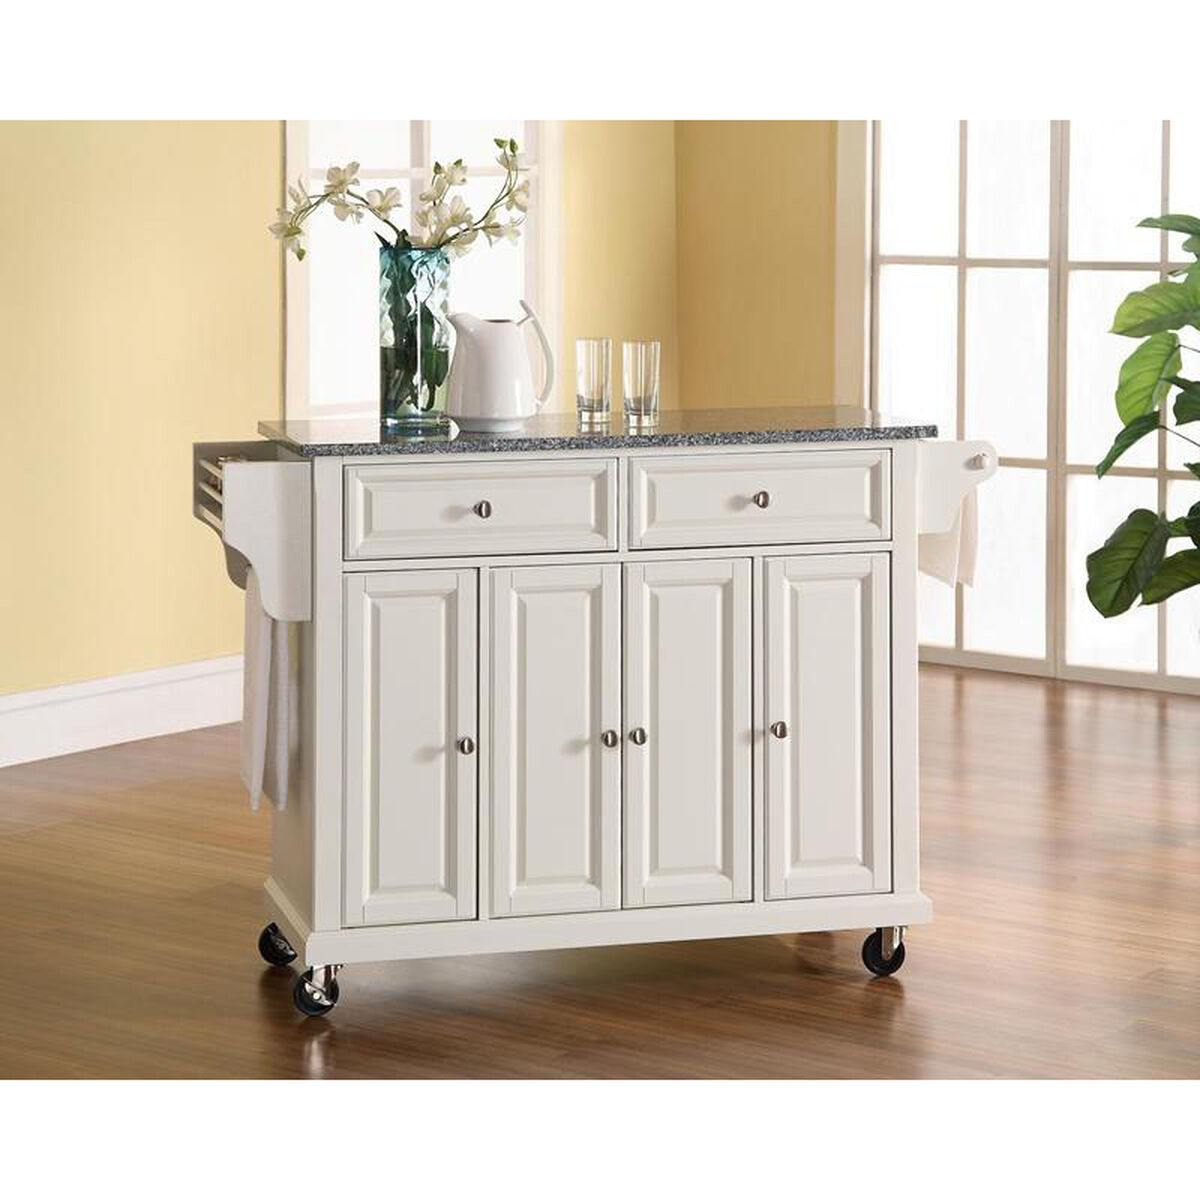 our solid granite top kitchen island cart with cabinets white finish is on sale now - Granite Top Kitchen Island